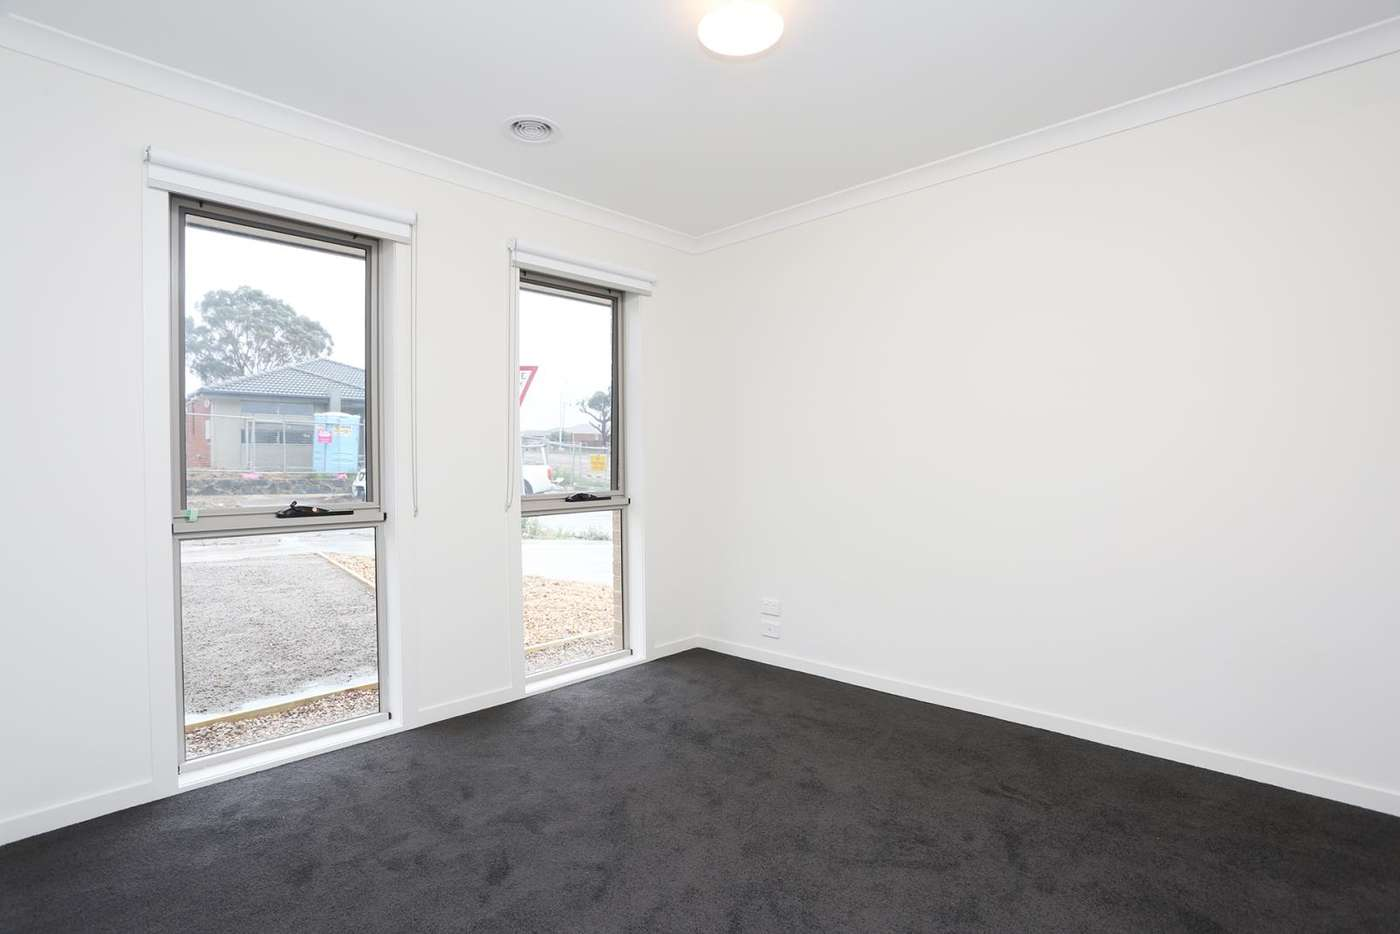 Sixth view of Homely house listing, 20 Clancy Way, Doreen VIC 3754